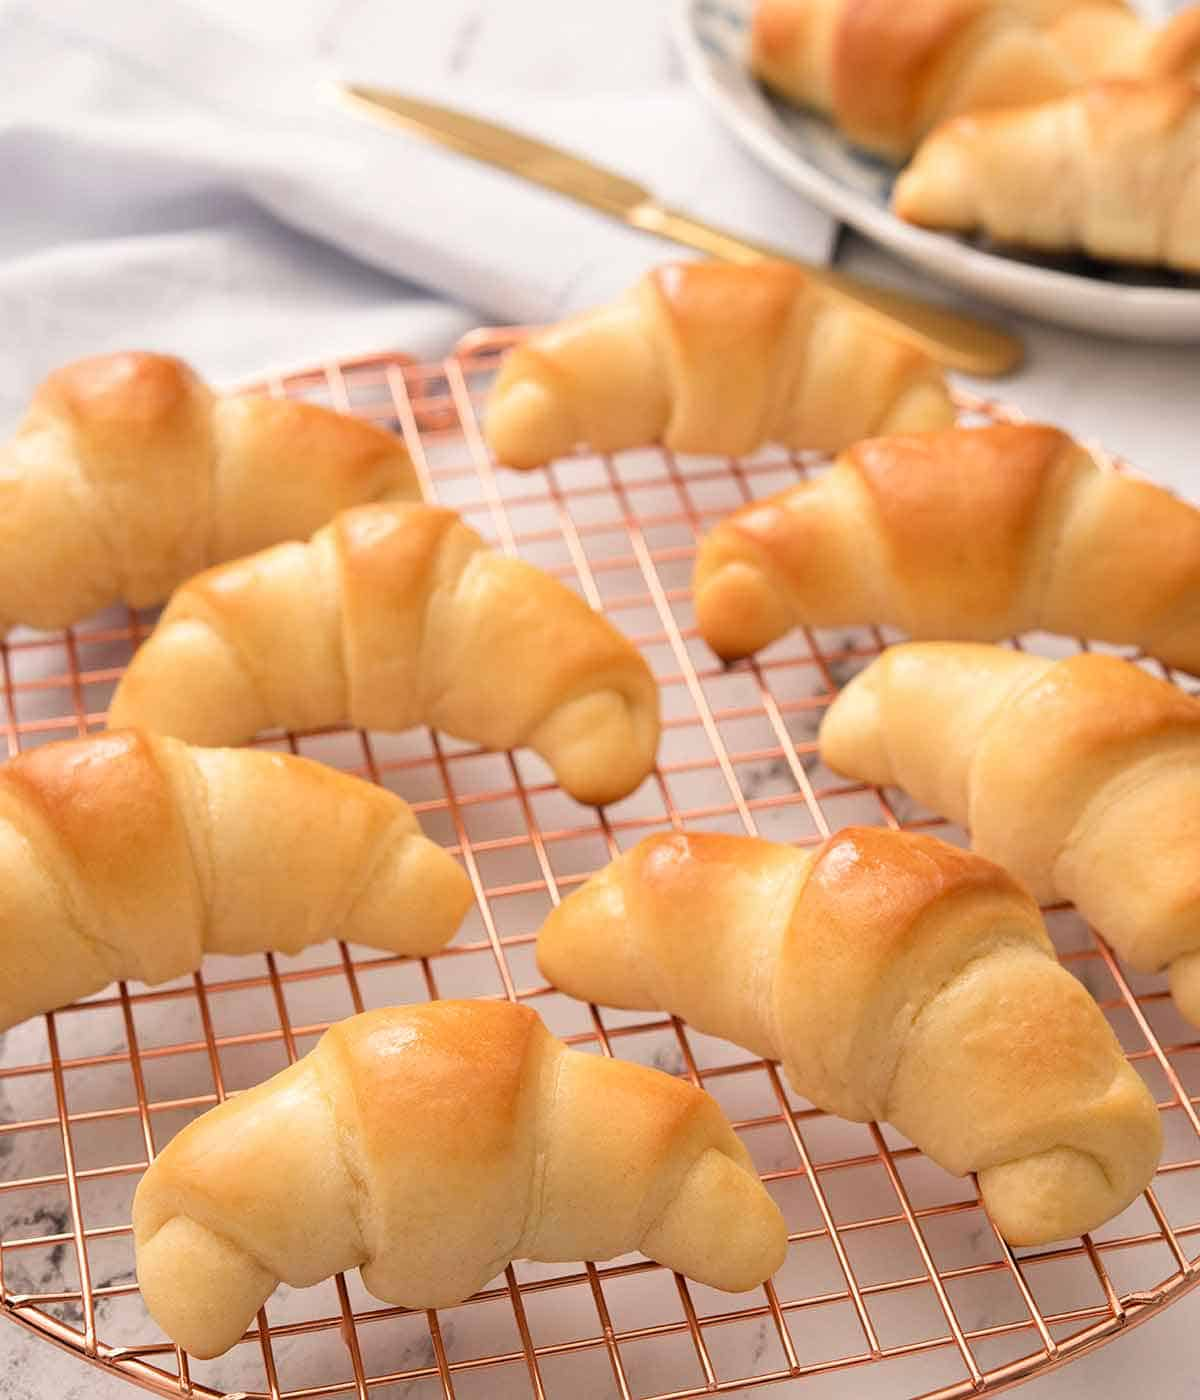 Eight crescent rolls on a rose gold circular cooling rack.